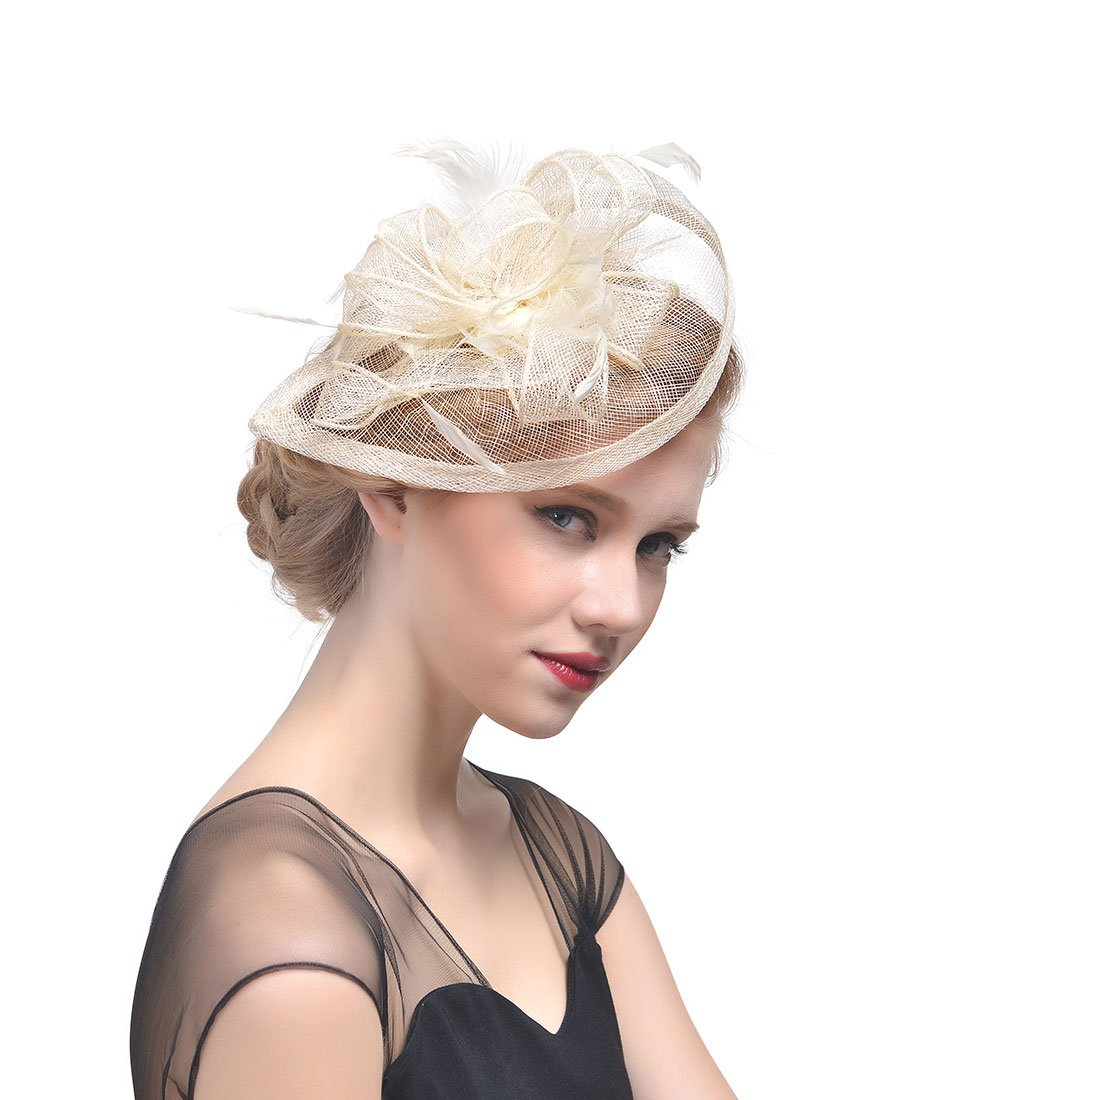 FeiYu Crafts Penny Mesh Hat Fascinator with Mesh Ribbons and Ivory Feathers